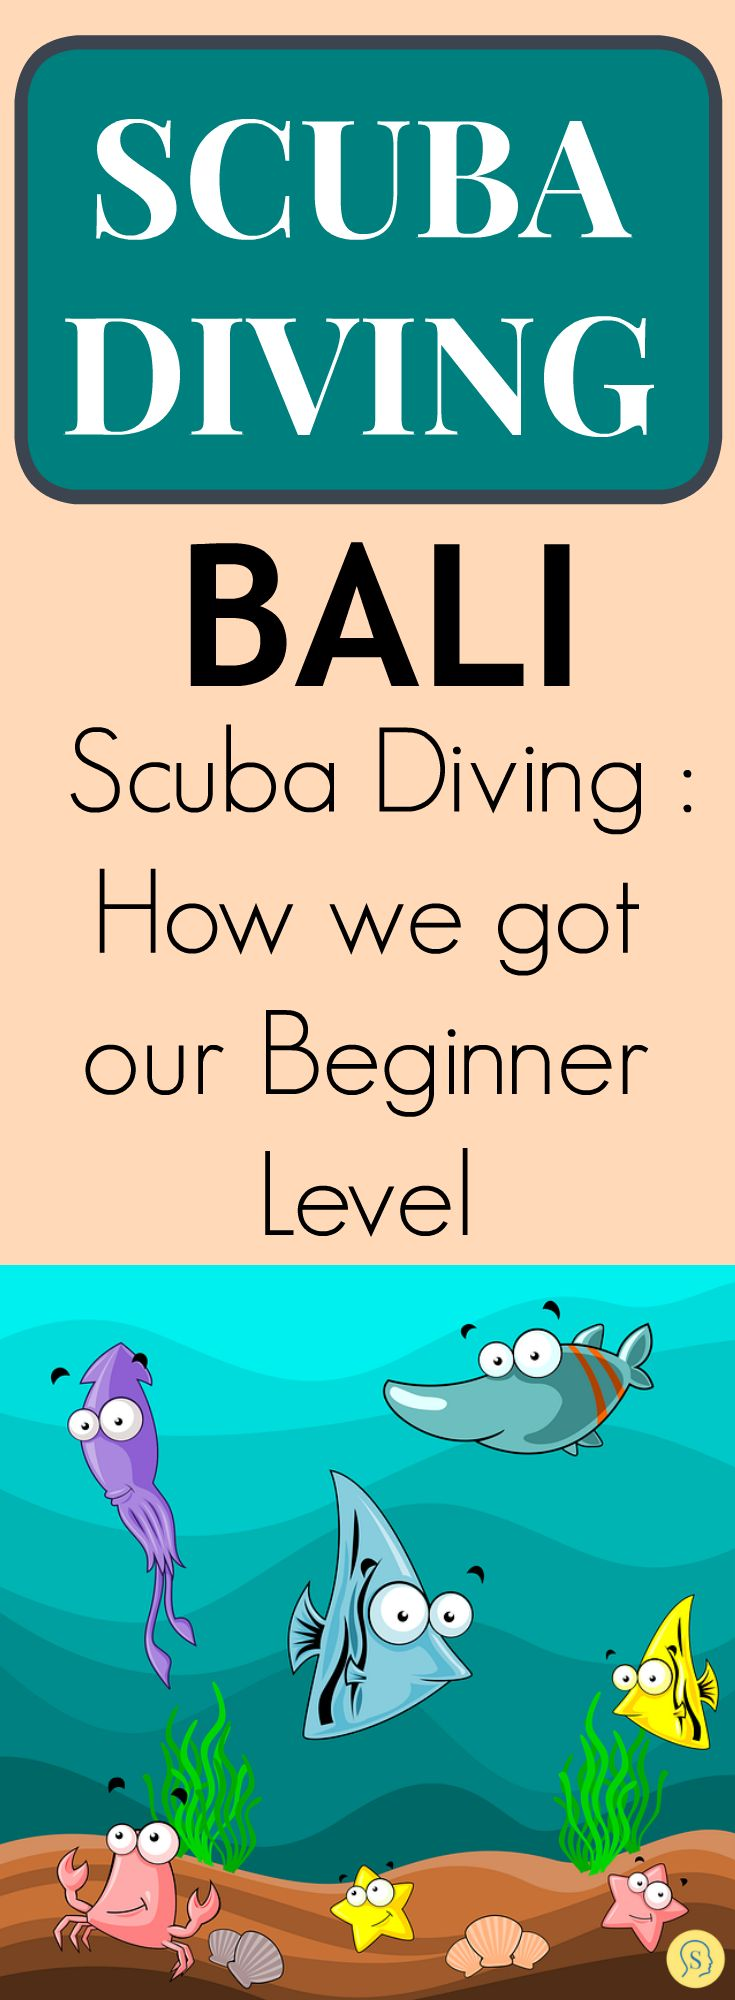 17 Best Scuba Diving Images On Pinterest Diving Snorkeling And